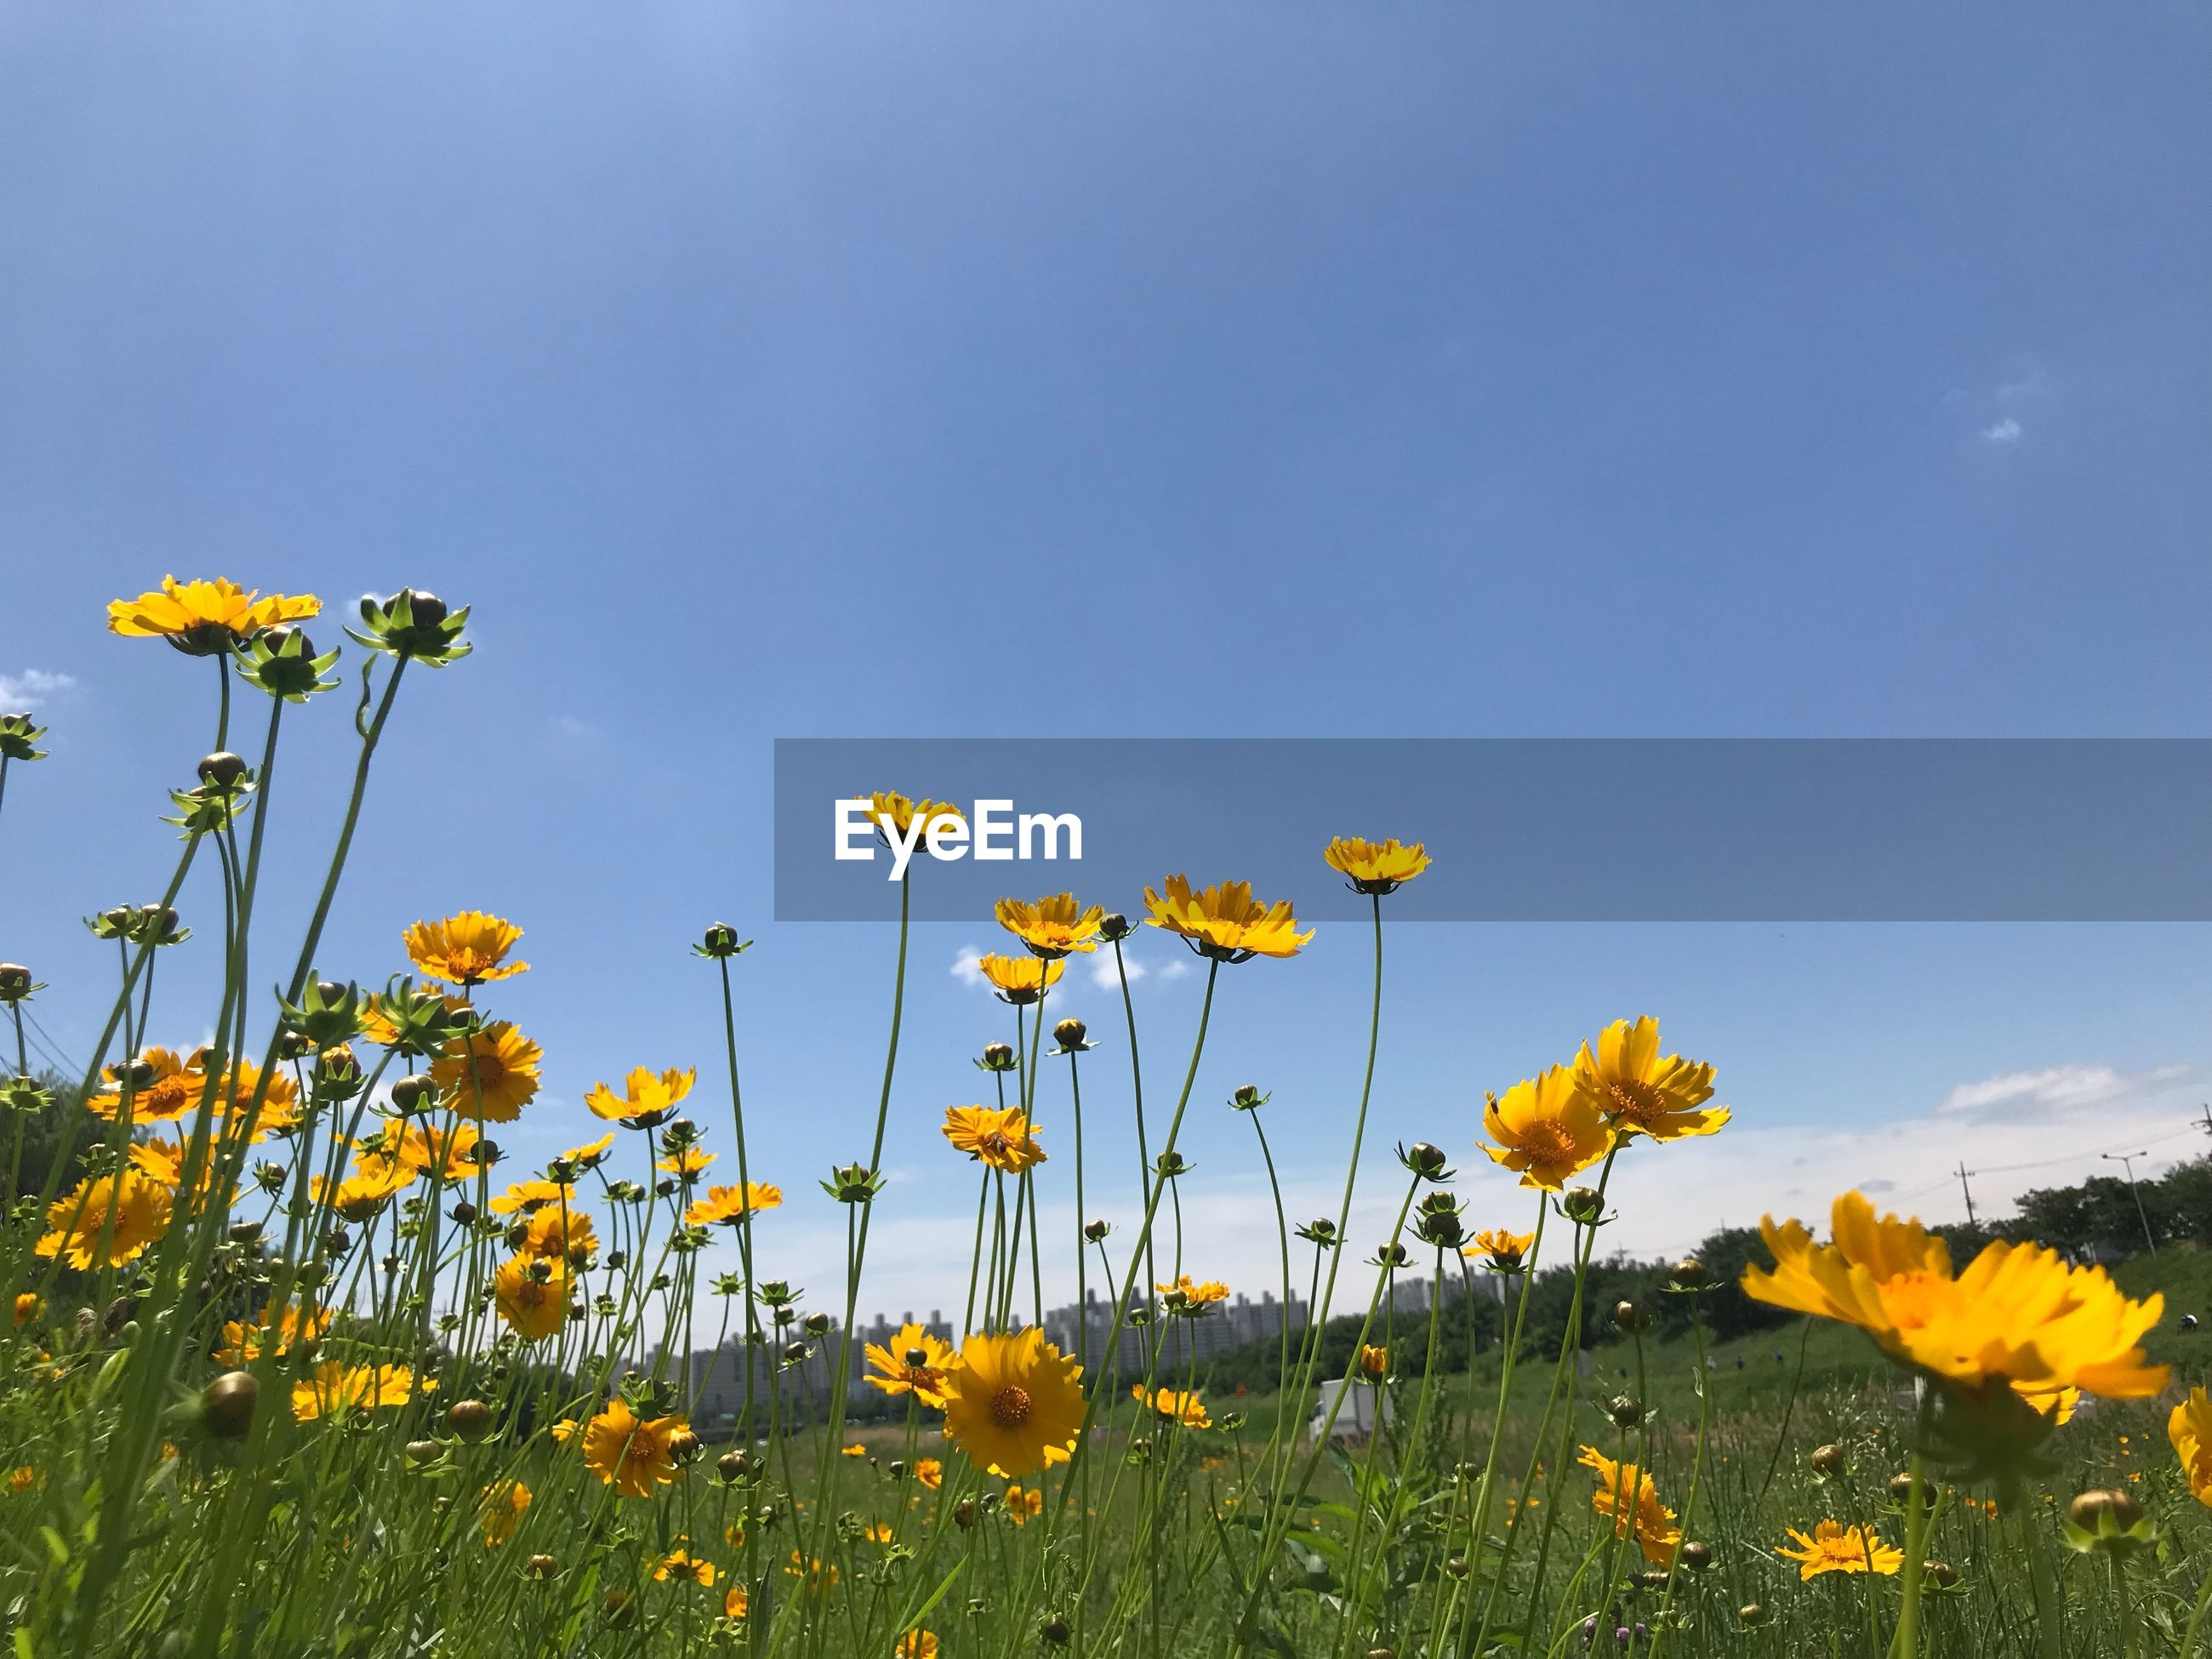 CLOSE-UP OF YELLOW FLOWERING PLANT ON FIELD AGAINST BLUE SKY